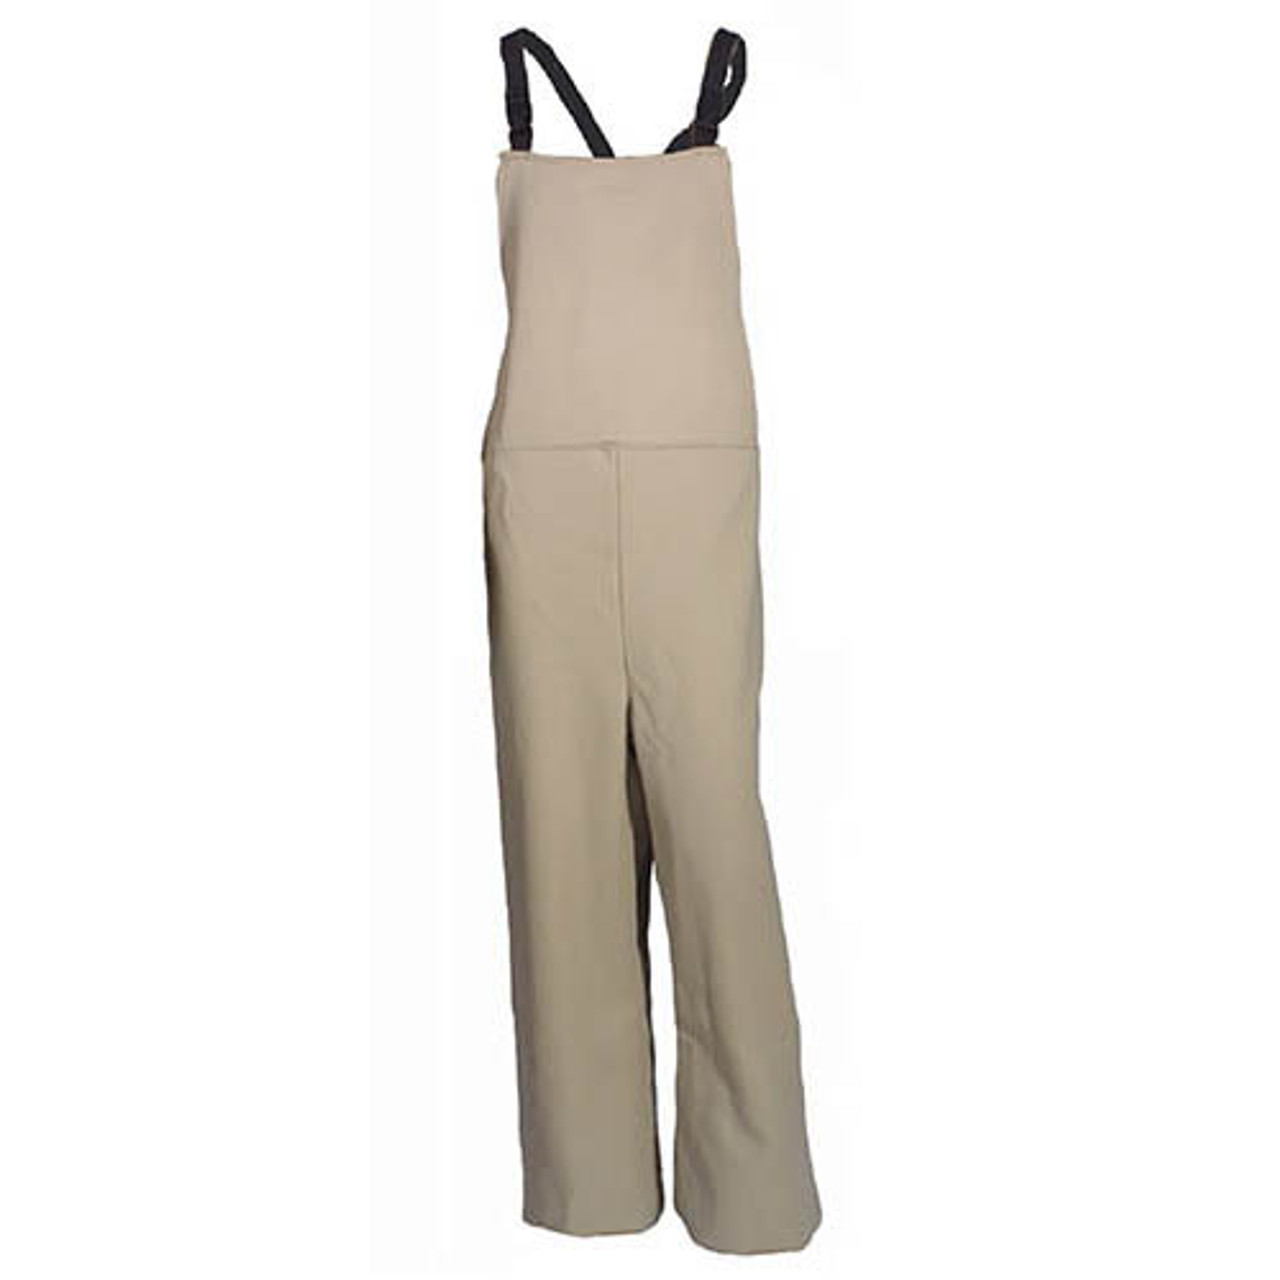 Cementex HRC4-OA-XL Arc Flash Rated Task Wear FR Treated Cotton Overalls, Rating: 40 Calories, Color: Khaki, Size: Extra-Large